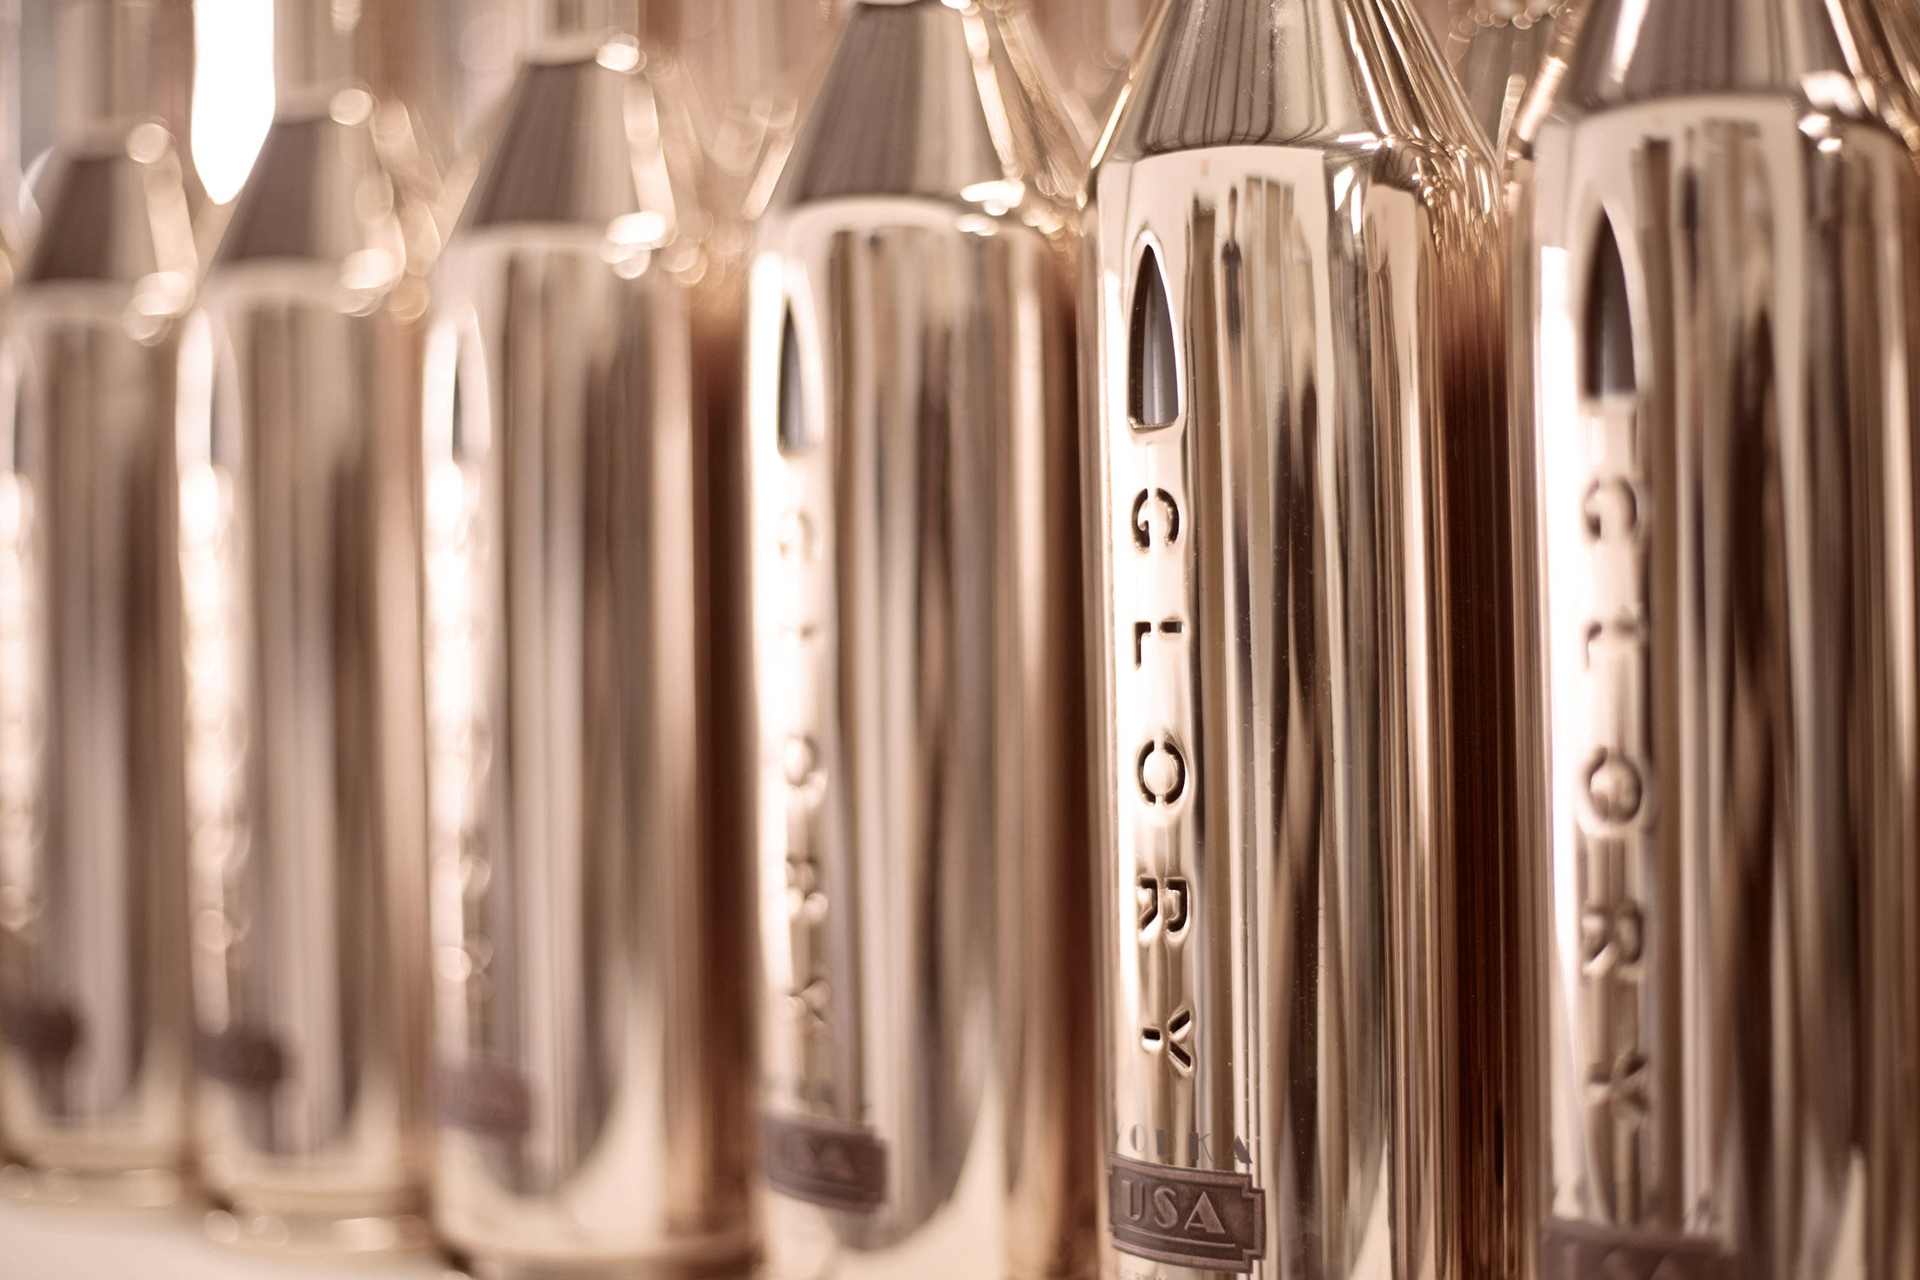 Glory Vodka, Branding, Logo Design, Packaging